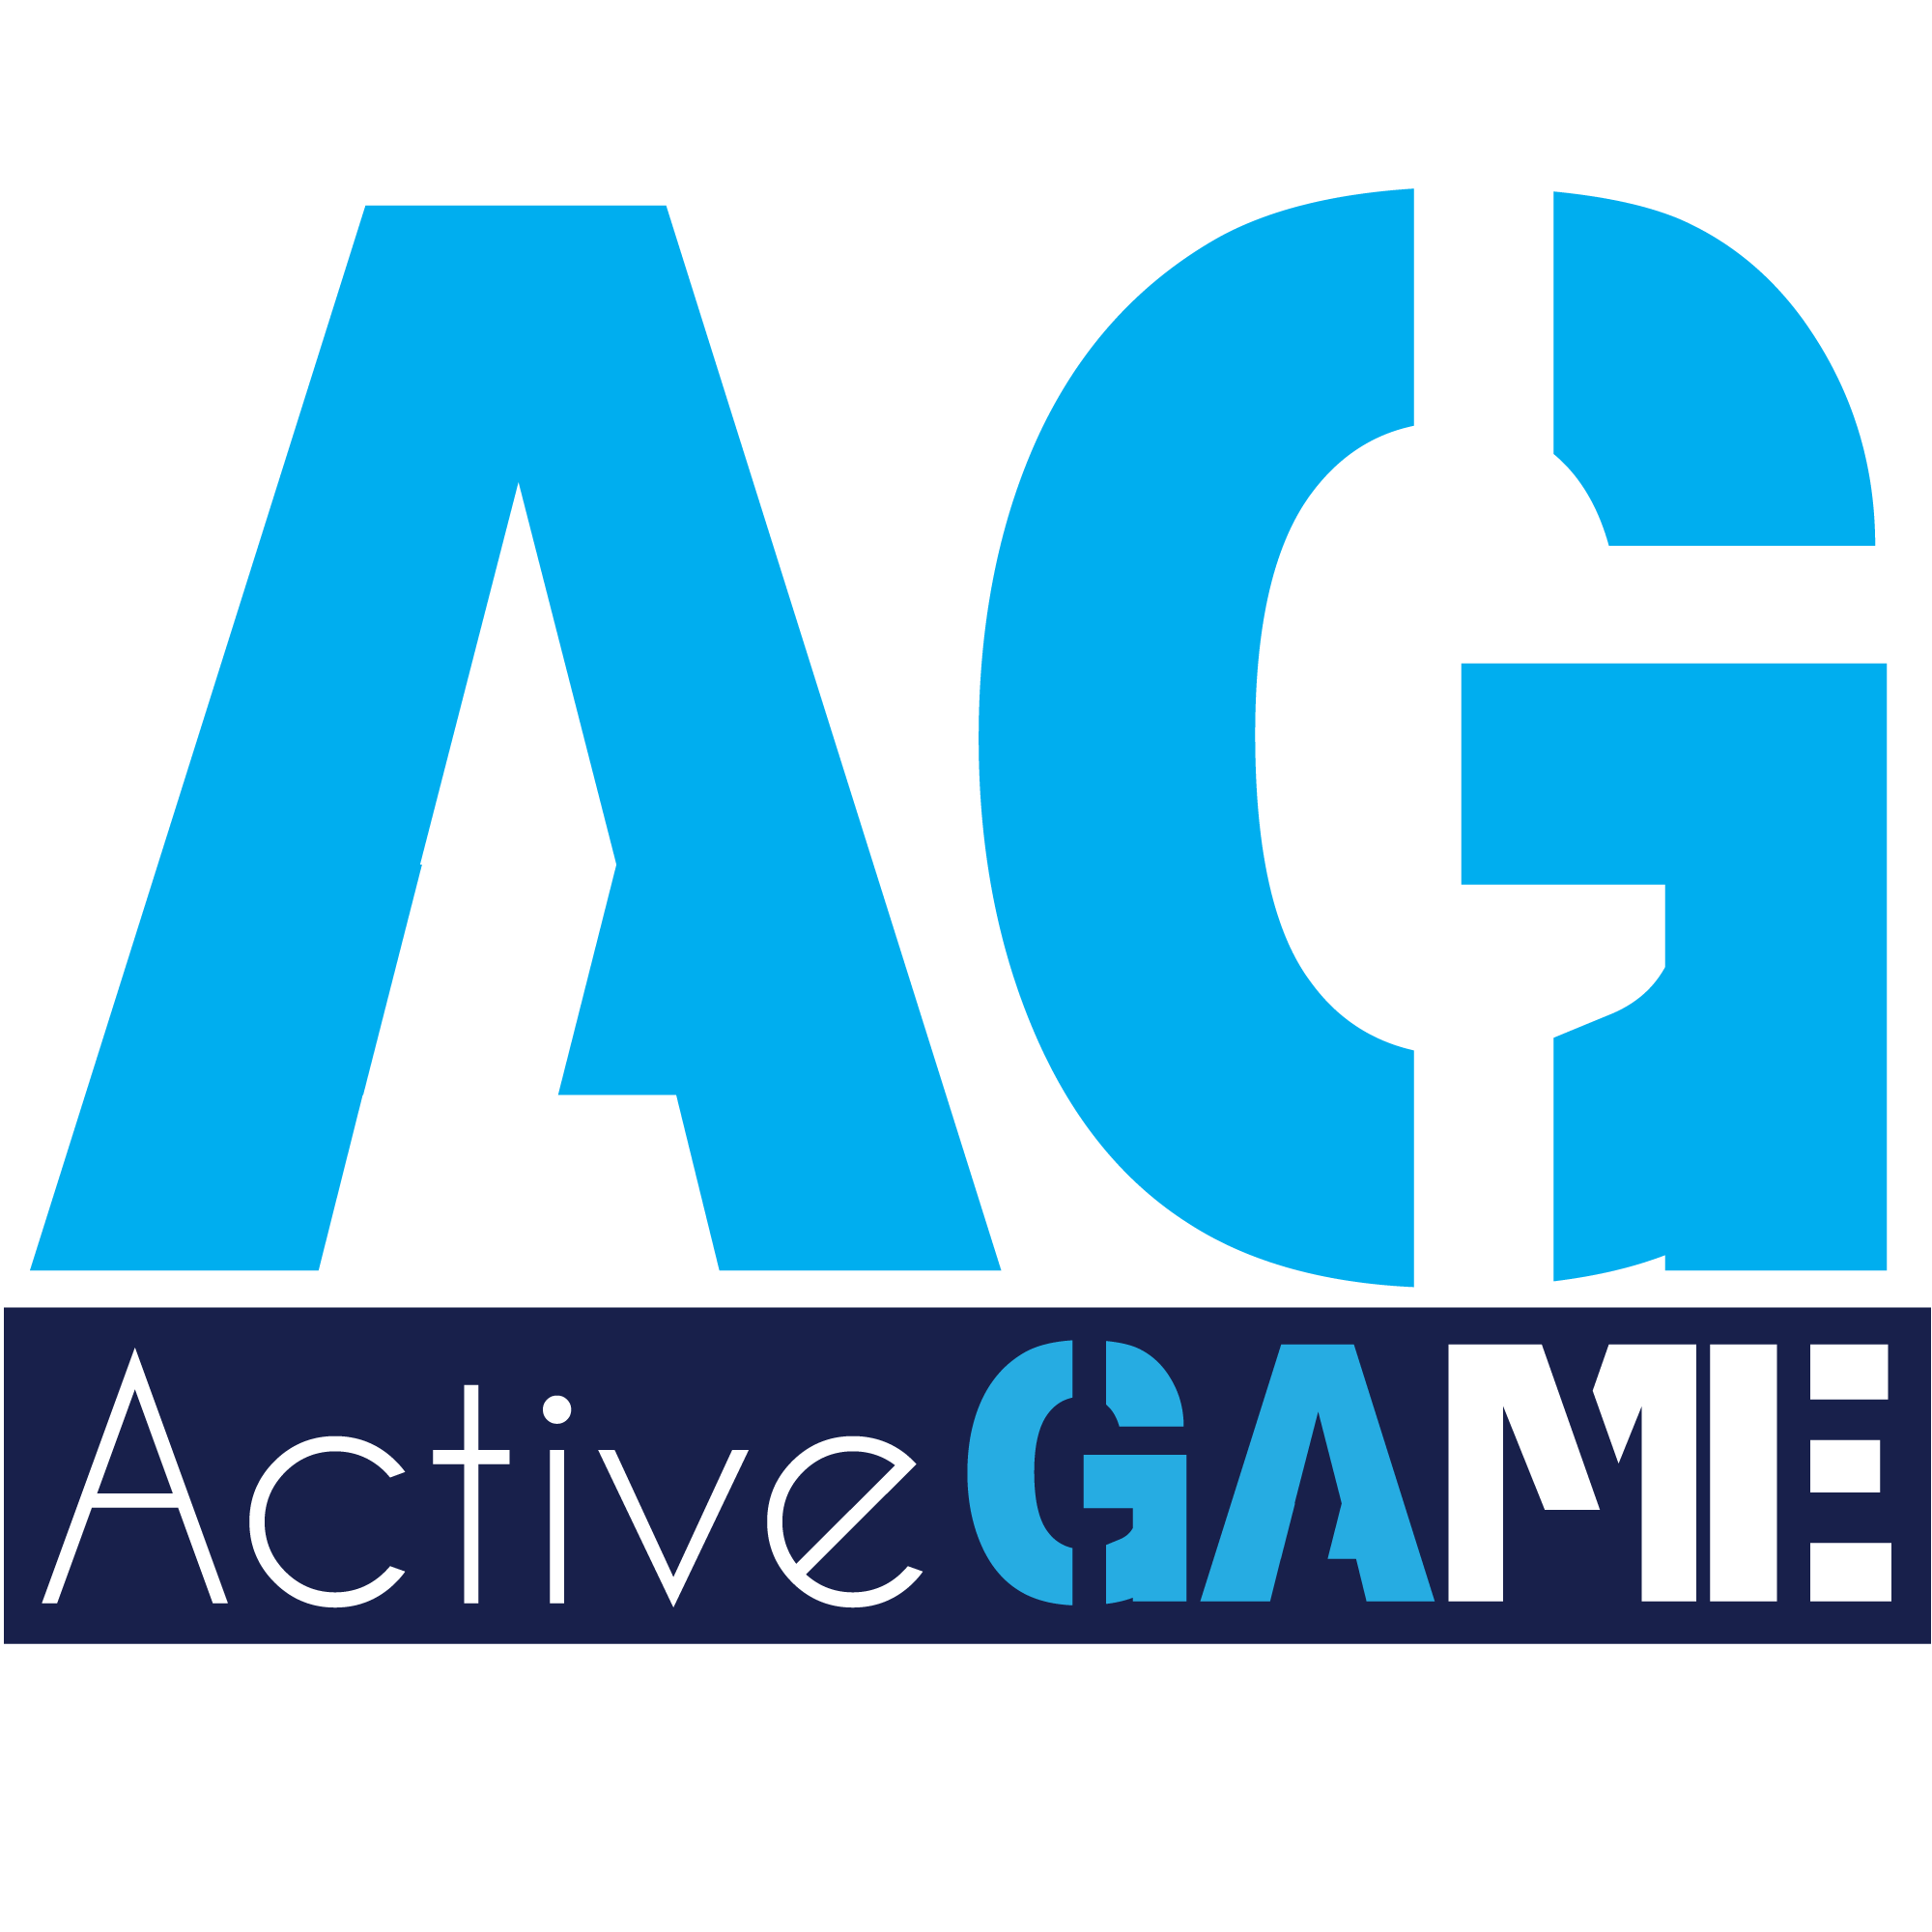 Active-game